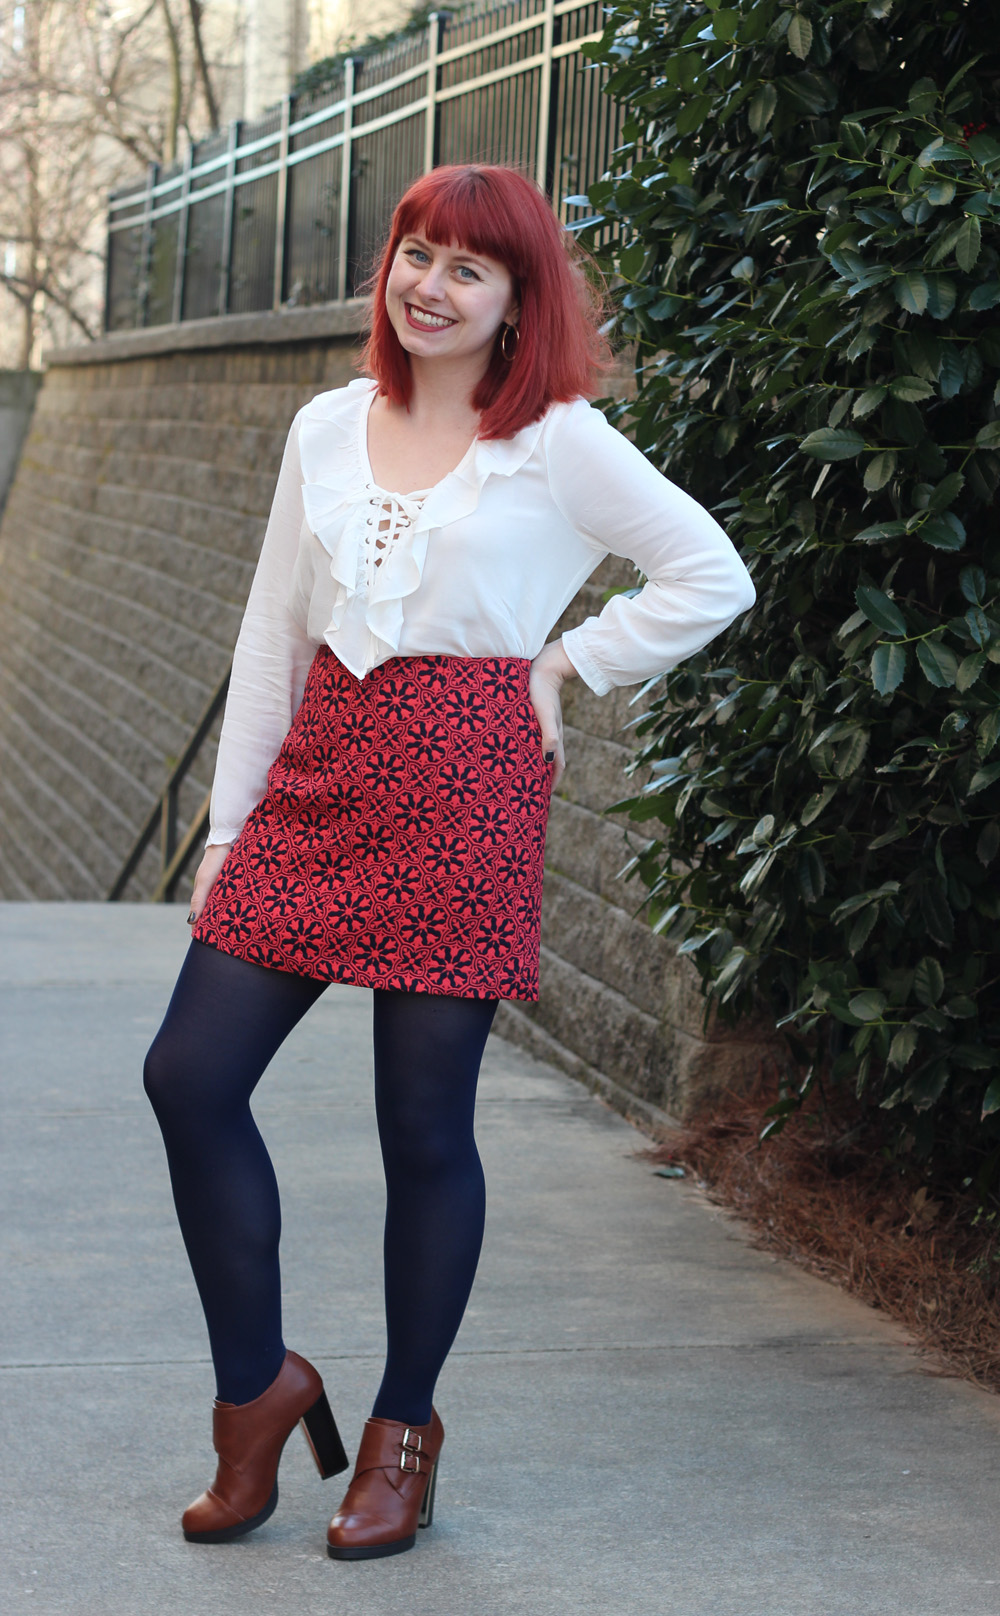 Quatrefoil Floral Print Mini Skirt, White Ruffled and Lace Up Blouse, Navy Blue Tights, and Retro Inspired Tawny Brown Block Heel Boots